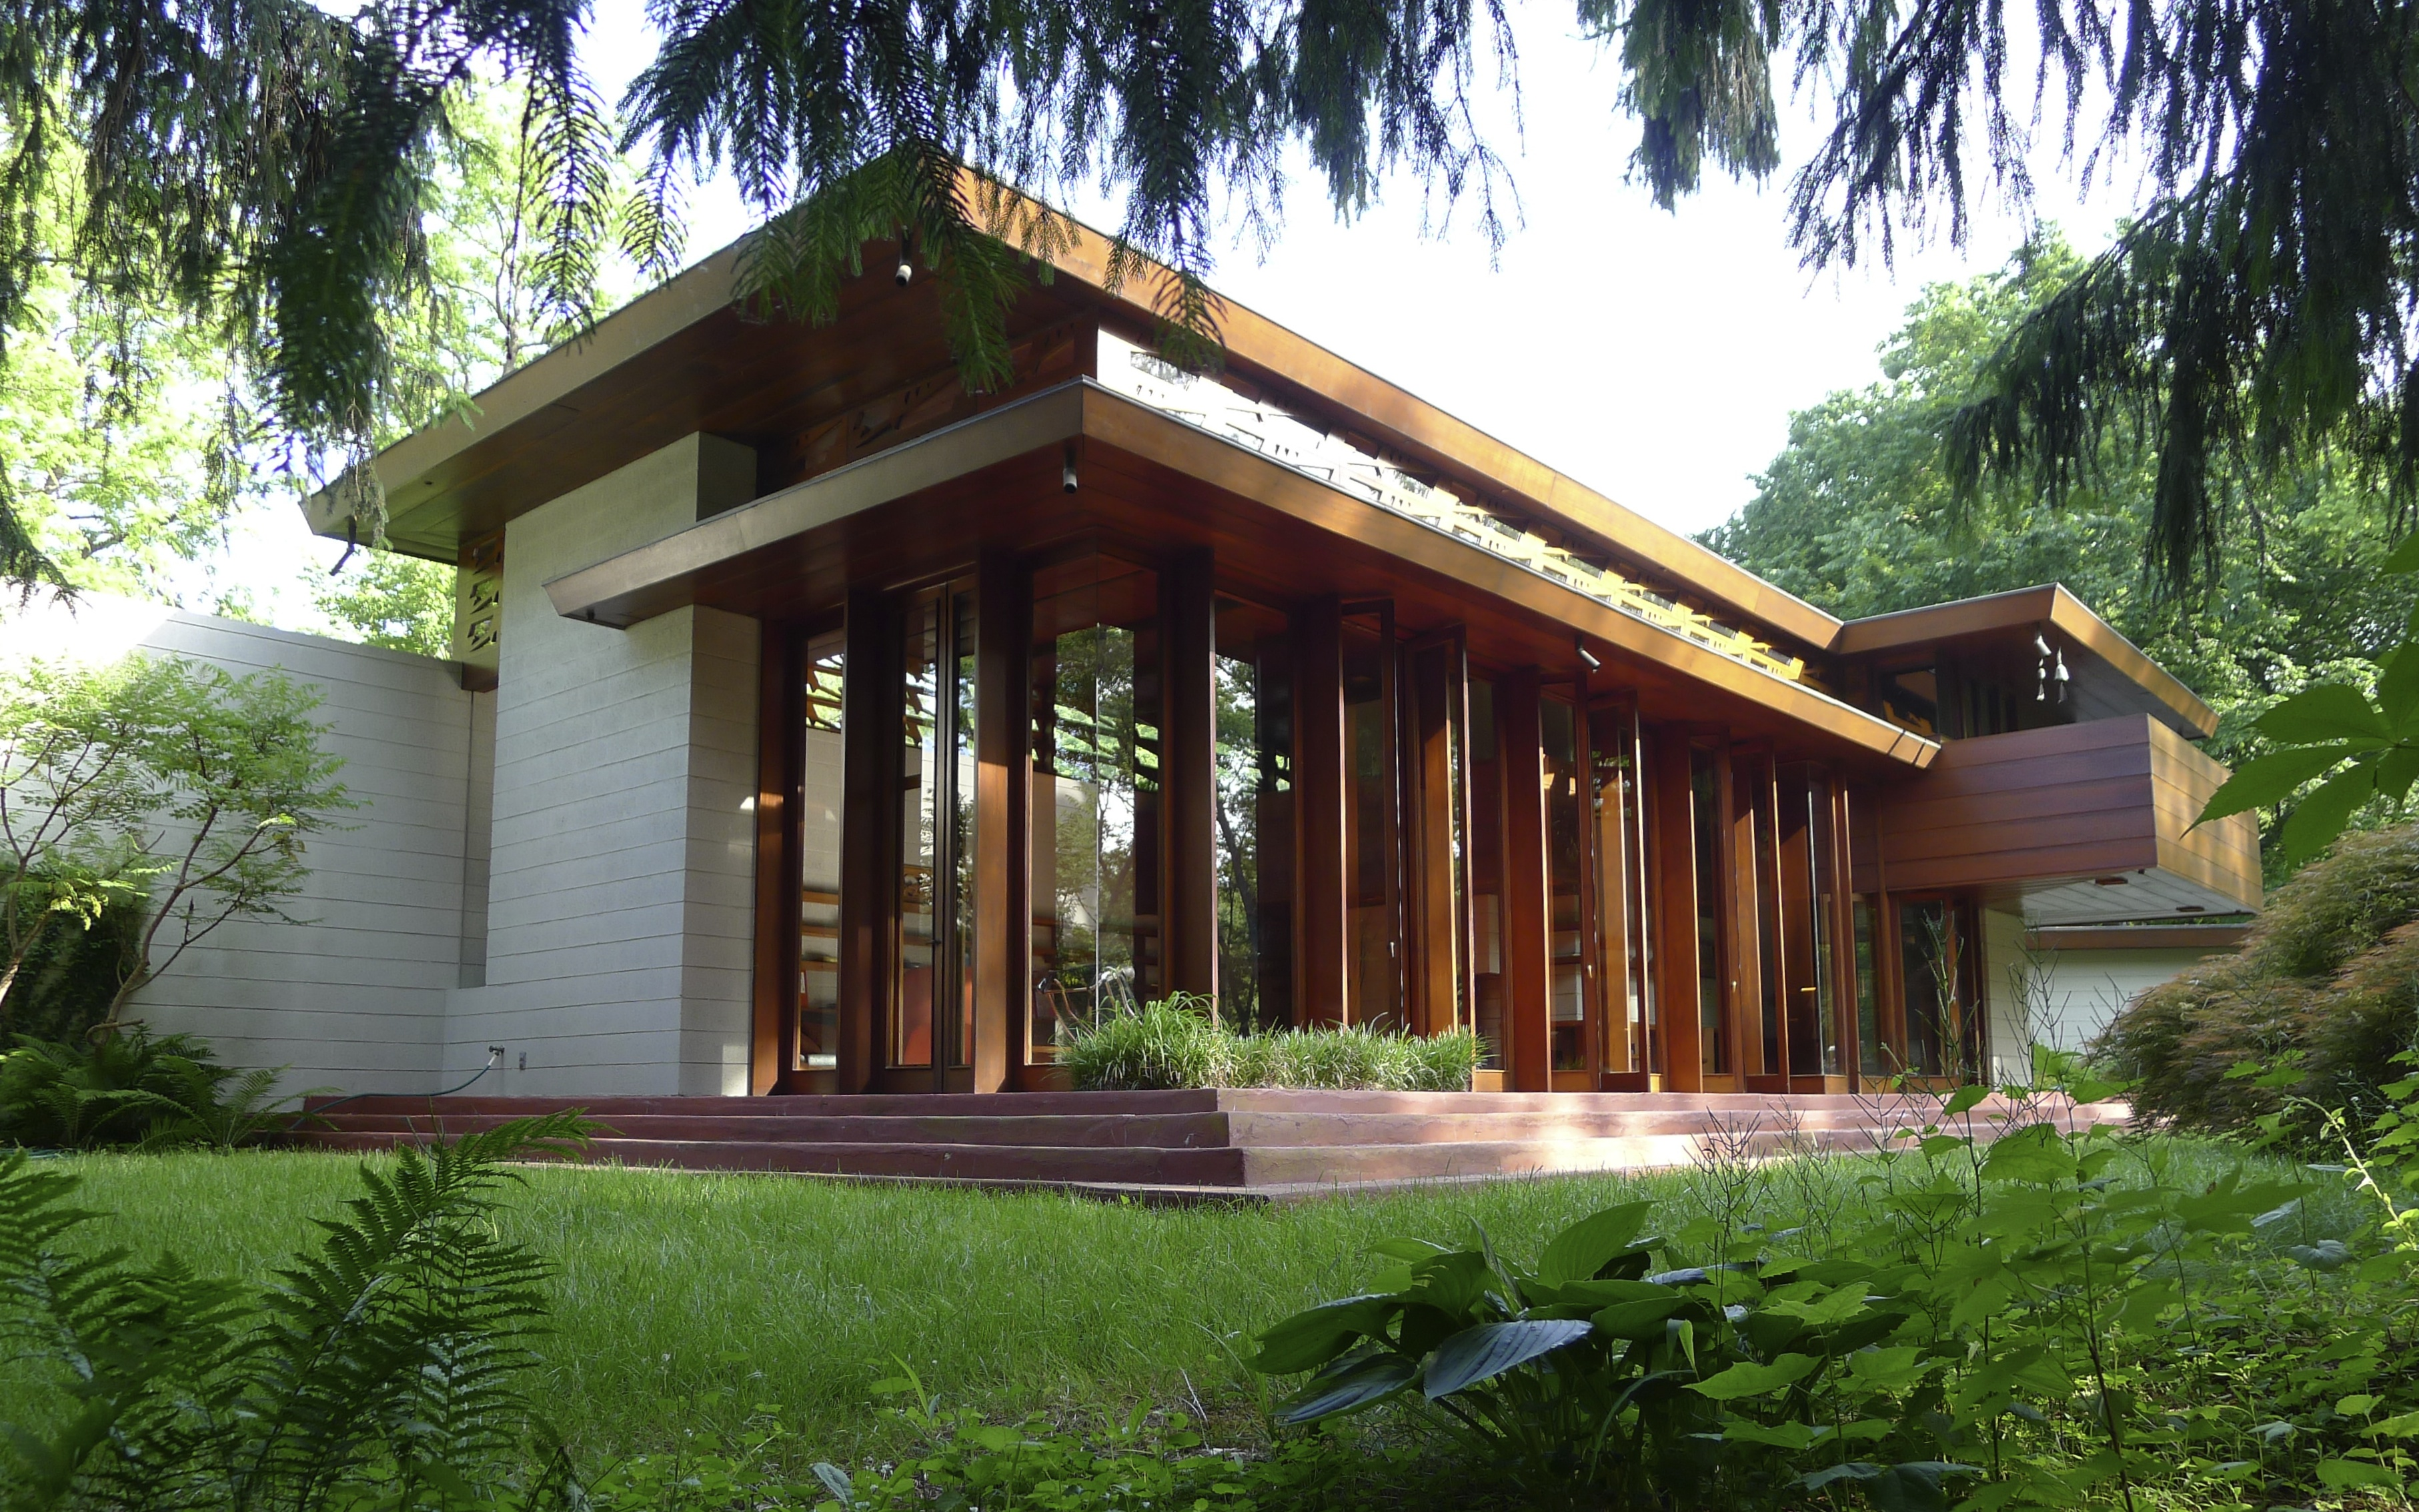 Crystal bridges will unveil frank lloyd wright s bachman - Frank lloyd wright designs ...